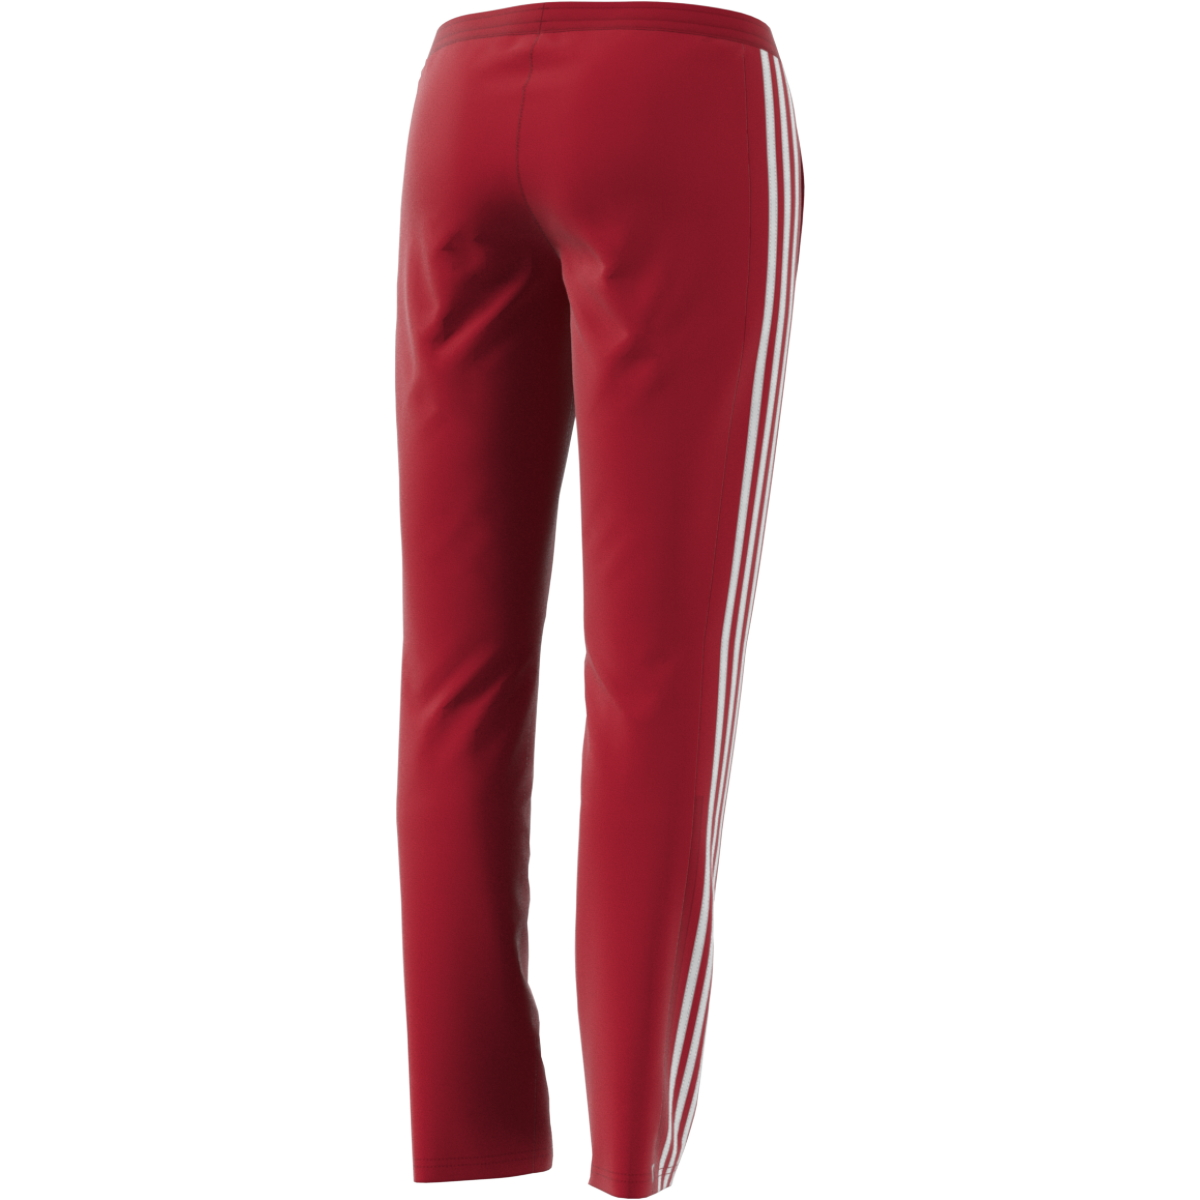 18ecf5cacb40c3 ... Vorschau  adidas T16 Team Sweat Hose Damen power rot  weiß AJ5392 ...